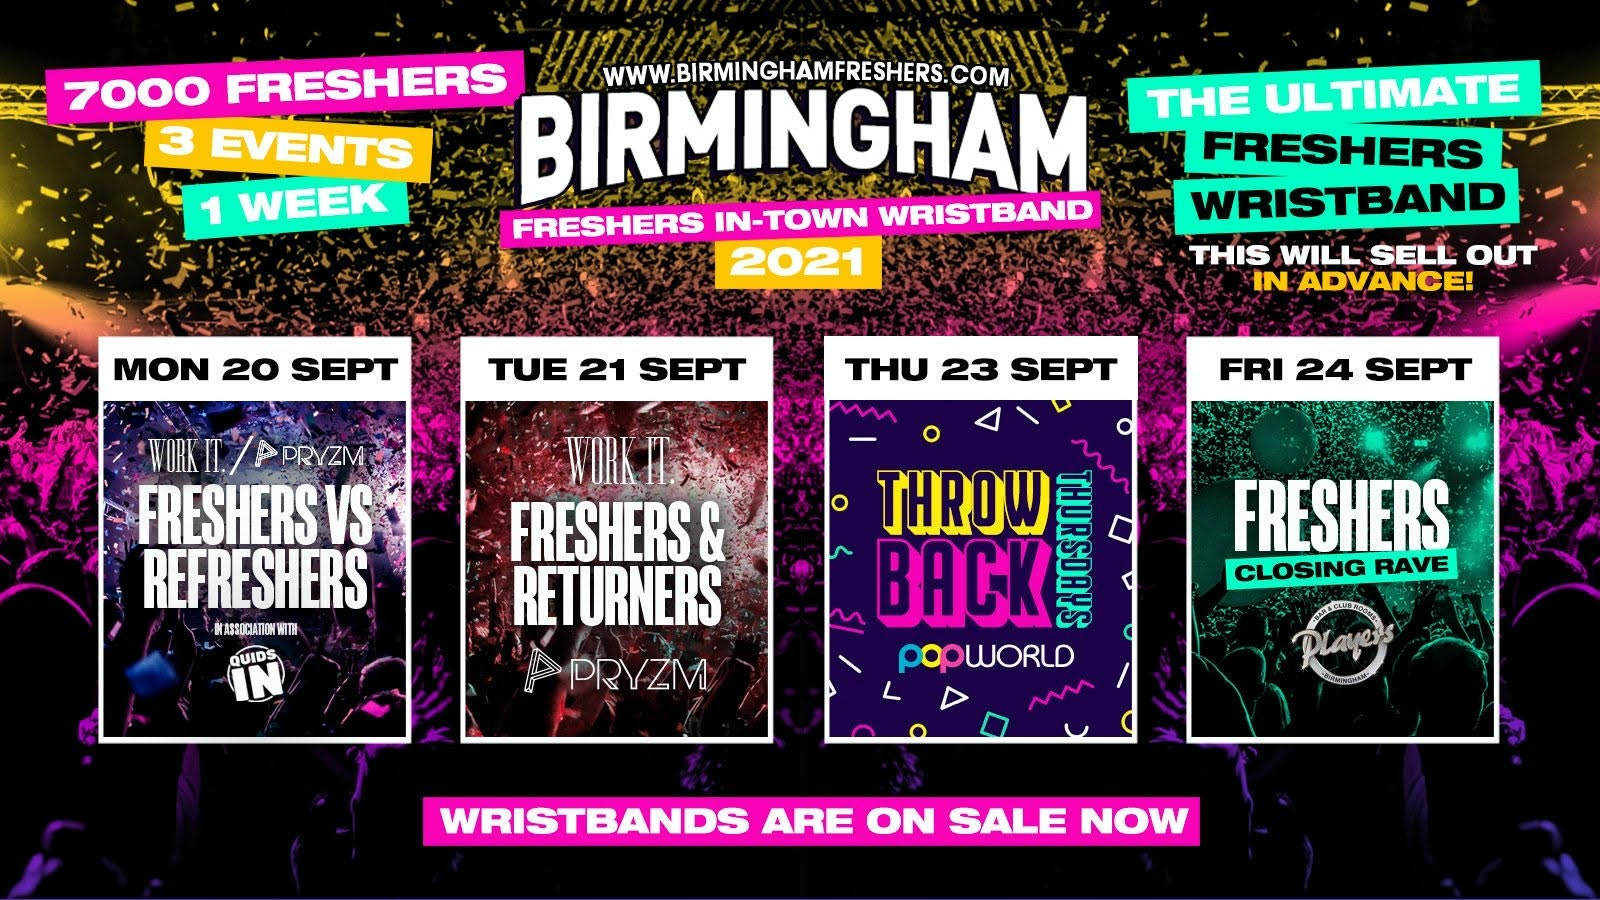 Birmingham Freshers Wristband 2021 – The Official Freshers Pass   Includes the biggest events in Birmingham